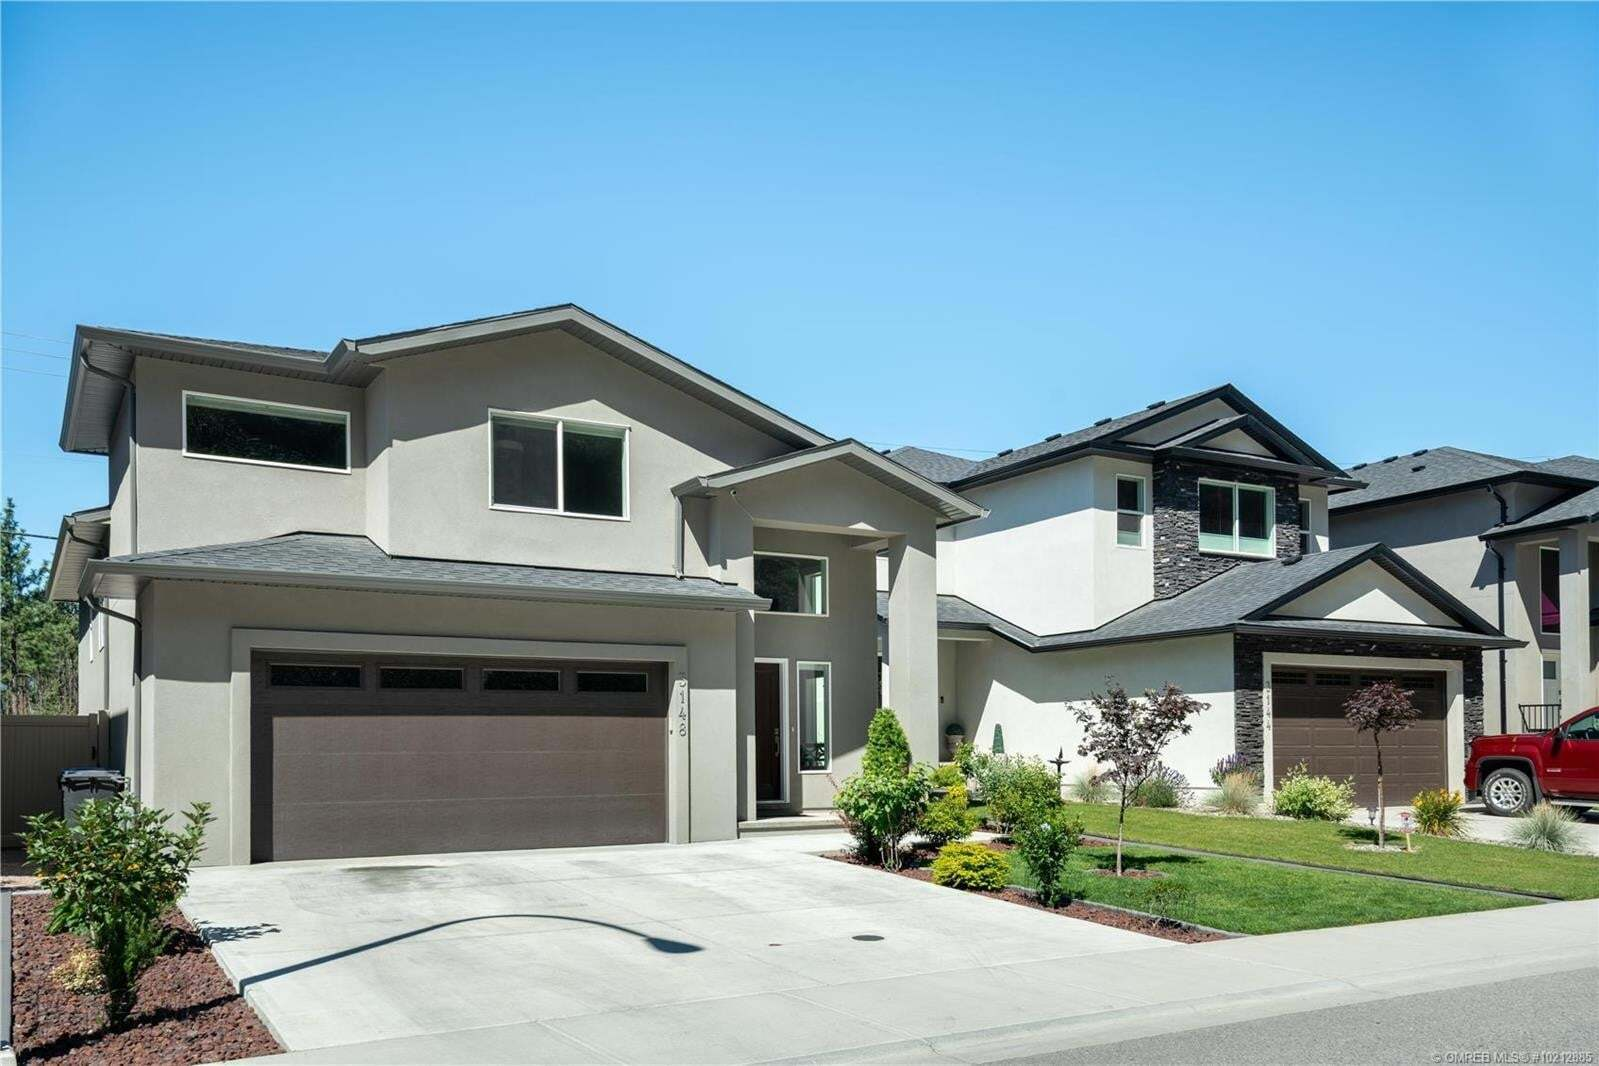 House for sale at 3148 Riesling Wy West Kelowna British Columbia - MLS: 10212885